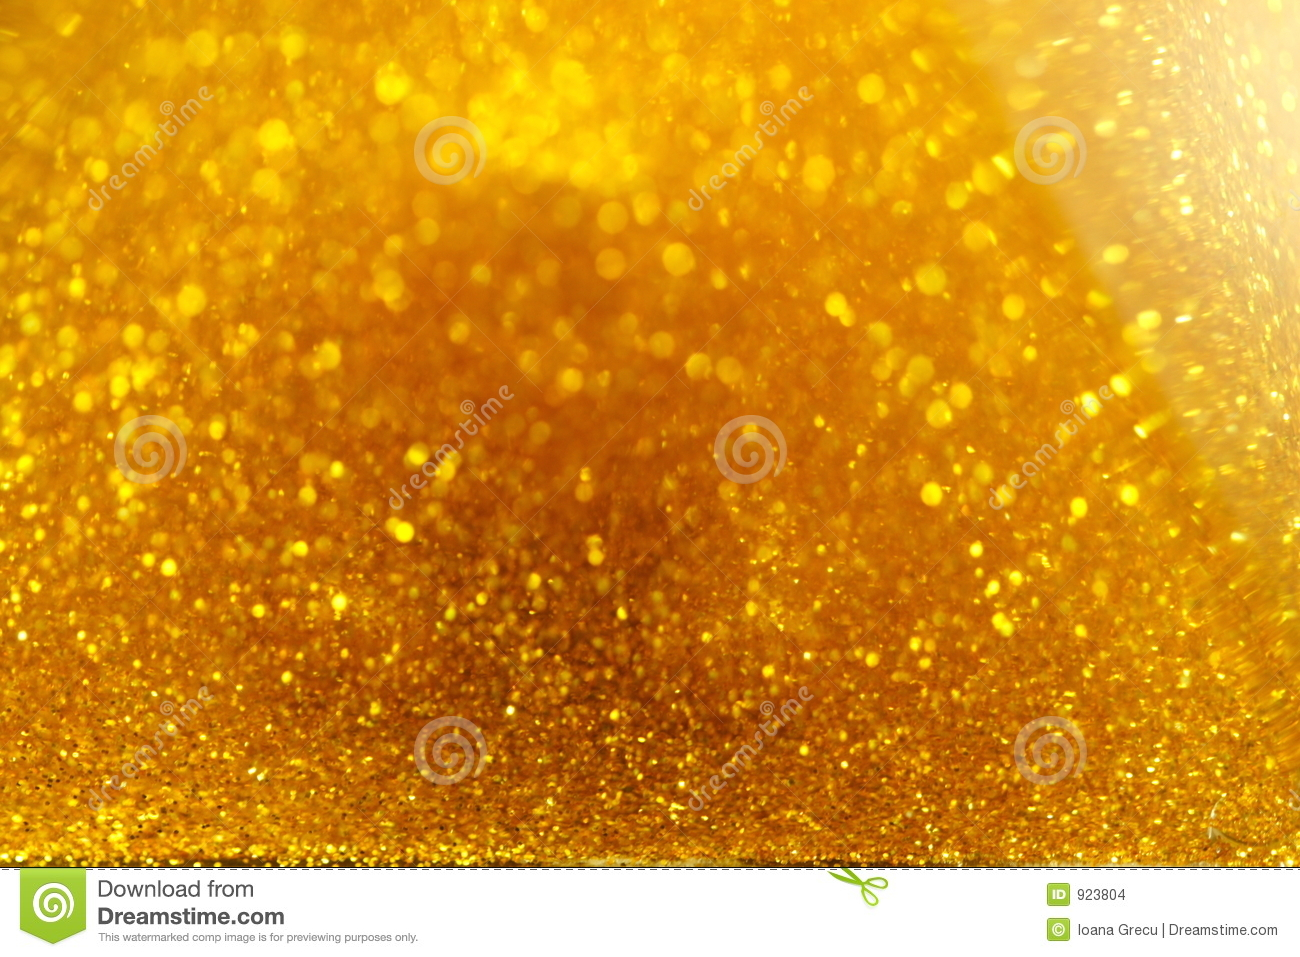 Golden sand of time